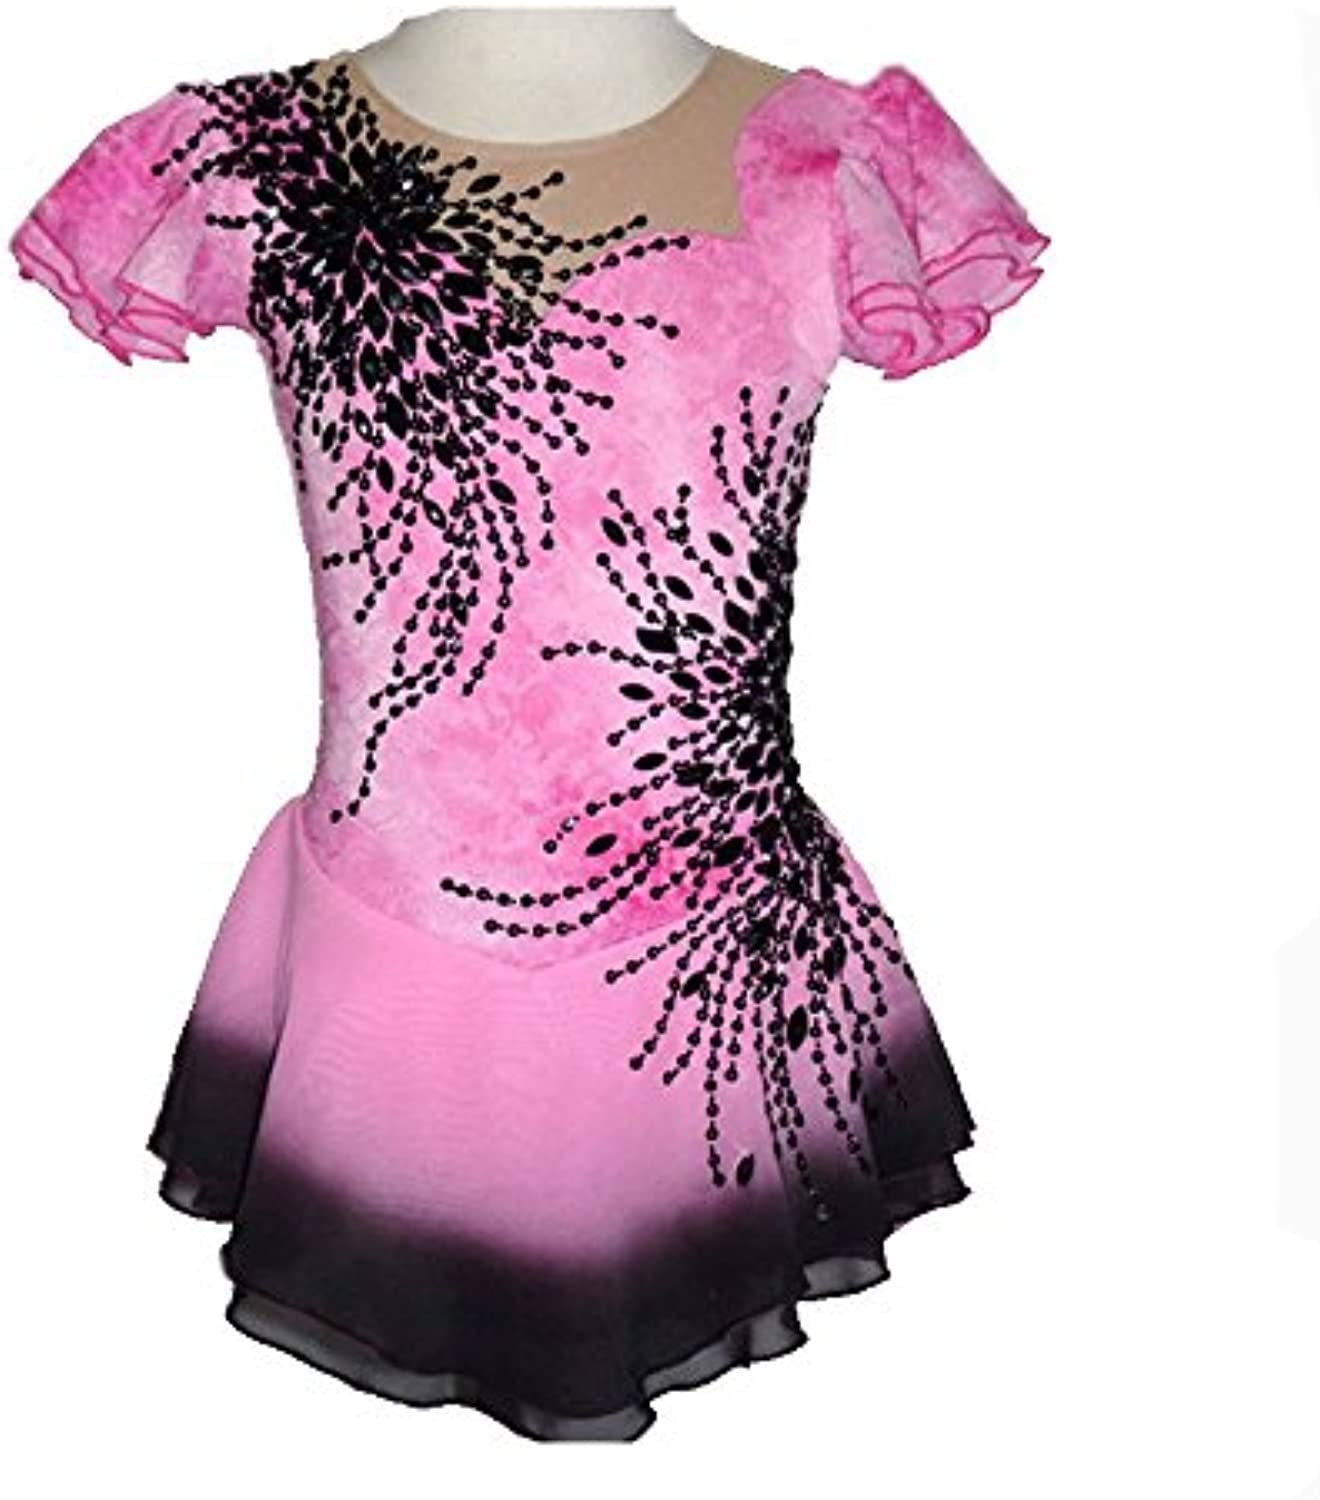 Figure Skating Dress For Girls Women Ice Skating Competition HighEnd Crystal Elastic Stretchy Round Neck Quick Dry Short Sleeves Handmade Skating Wear Pink